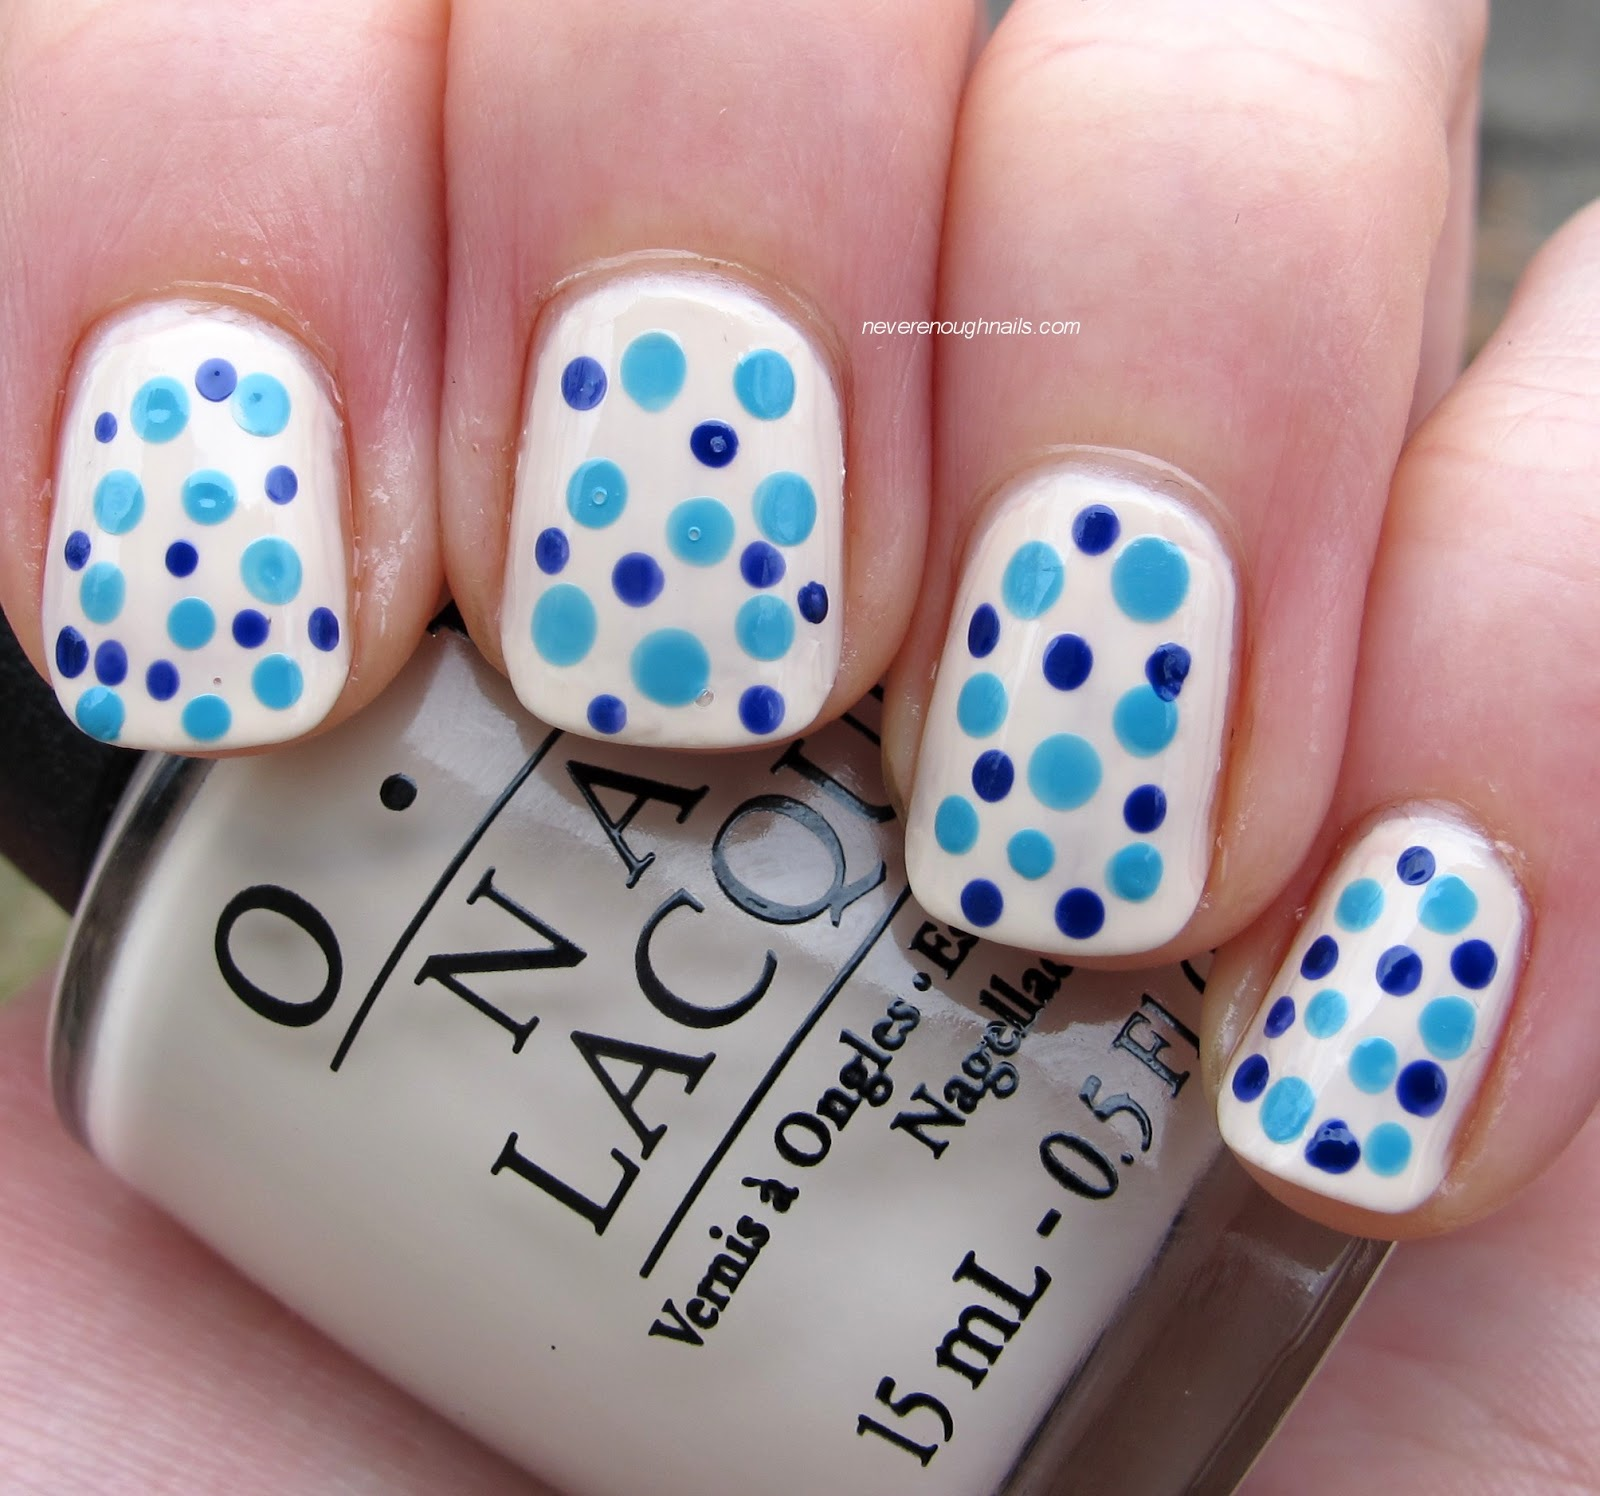 Nice Manicure With The Dotting Tools Hireability